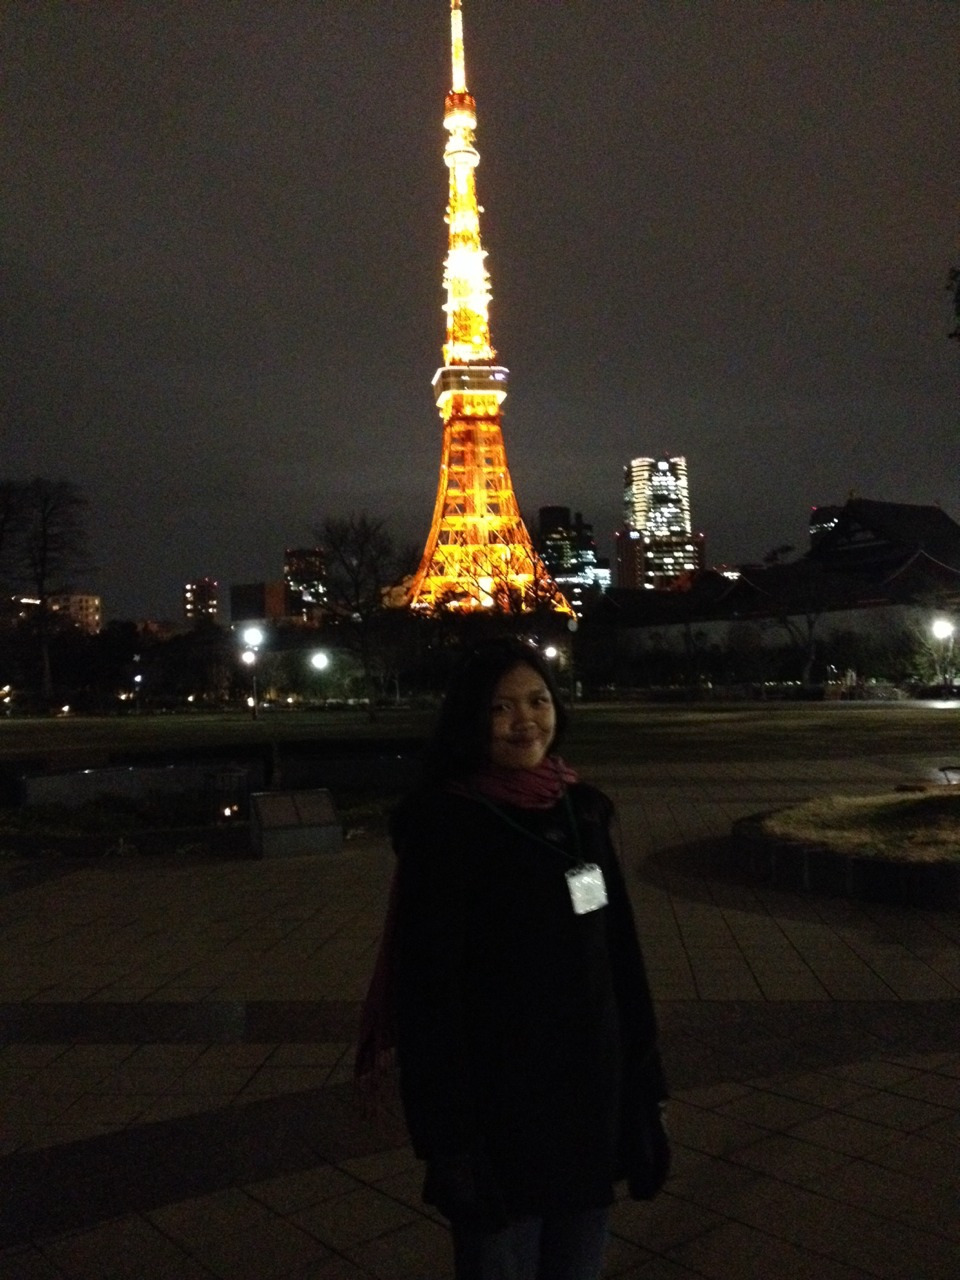 The Iconic Tokyo Tower